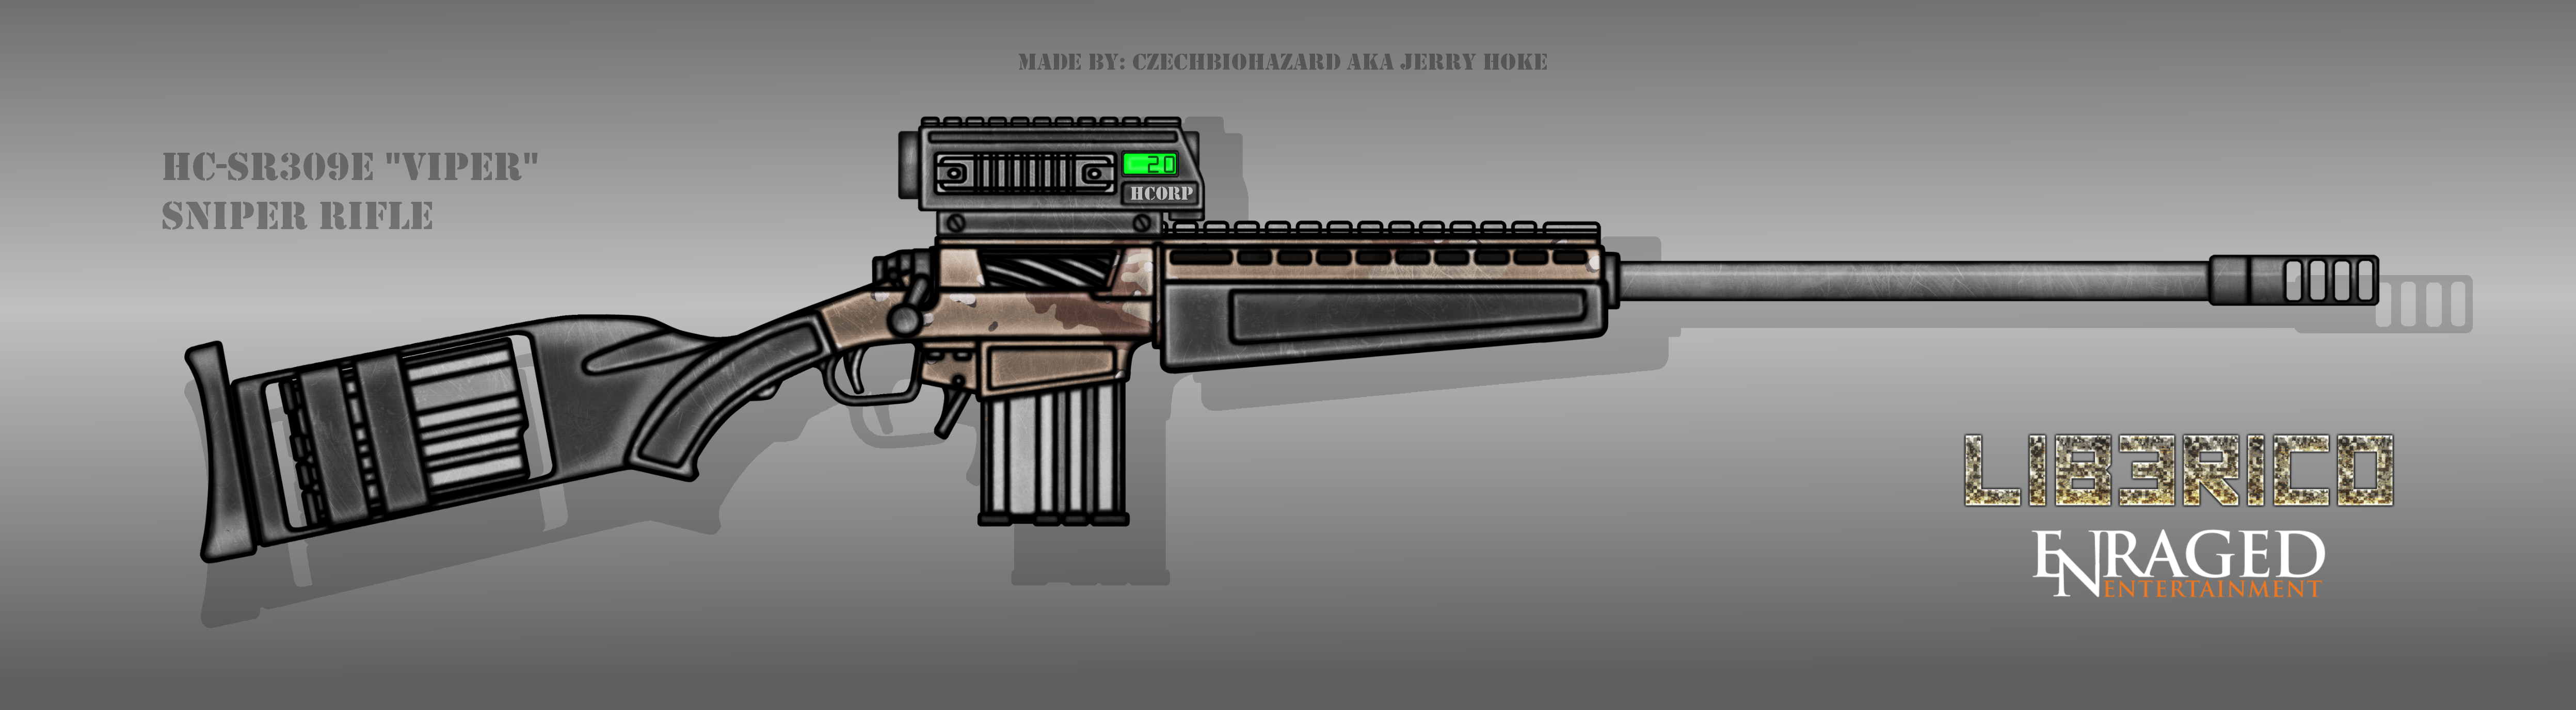 Fictional Firearm: HC-SR309E [Viper] Sniper Rifle by CzechBiohazard